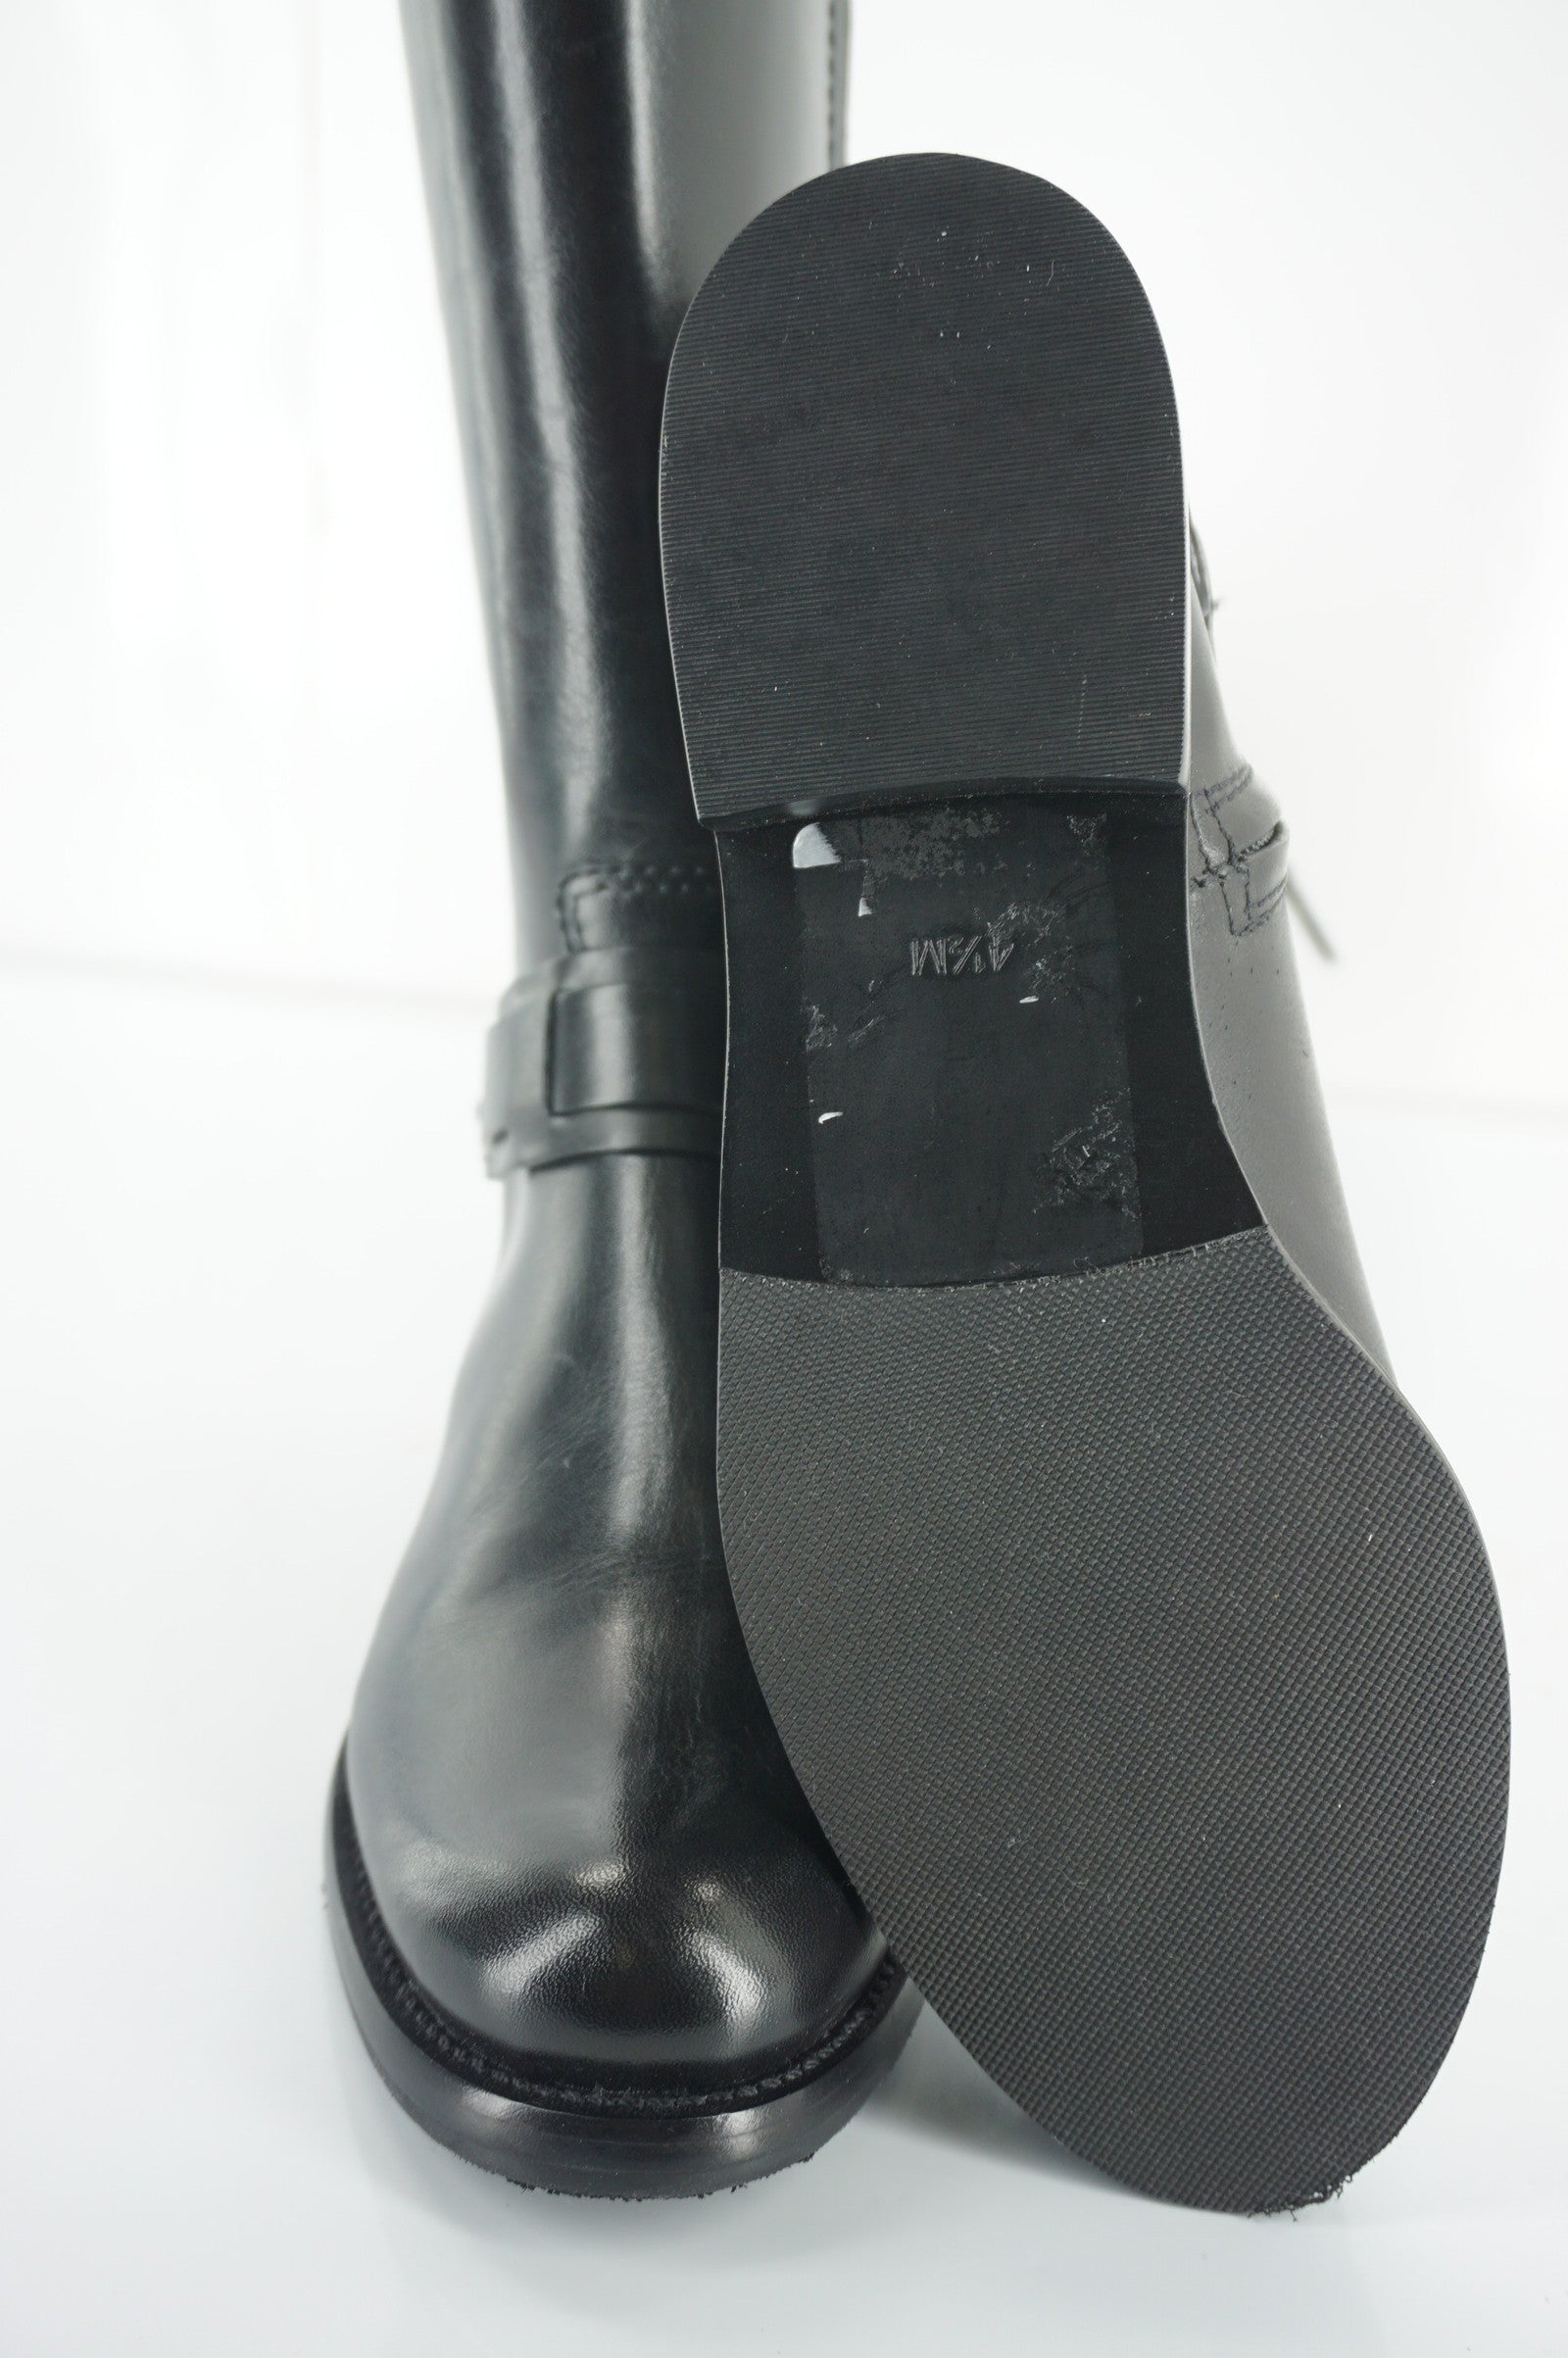 Tory Burch Derby Black Leather Riding Boot Size 4.5 Tall Knee Logo Heel NIB $495